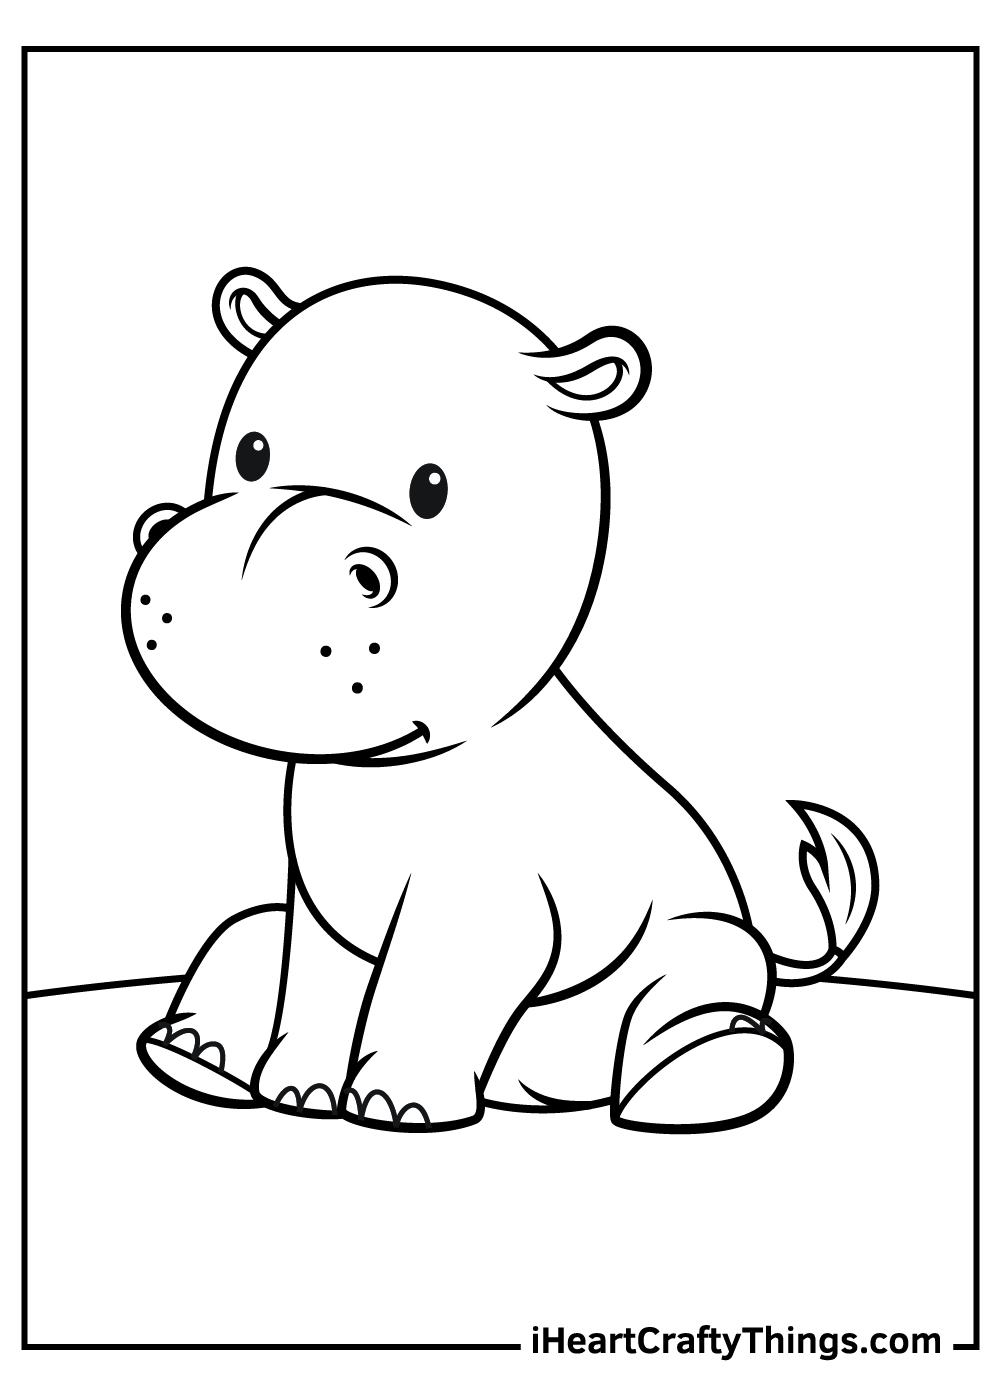 printable baby animals coloring updated animal ladybug symmetrical just for fun free coloring pages Animal Coloring Page